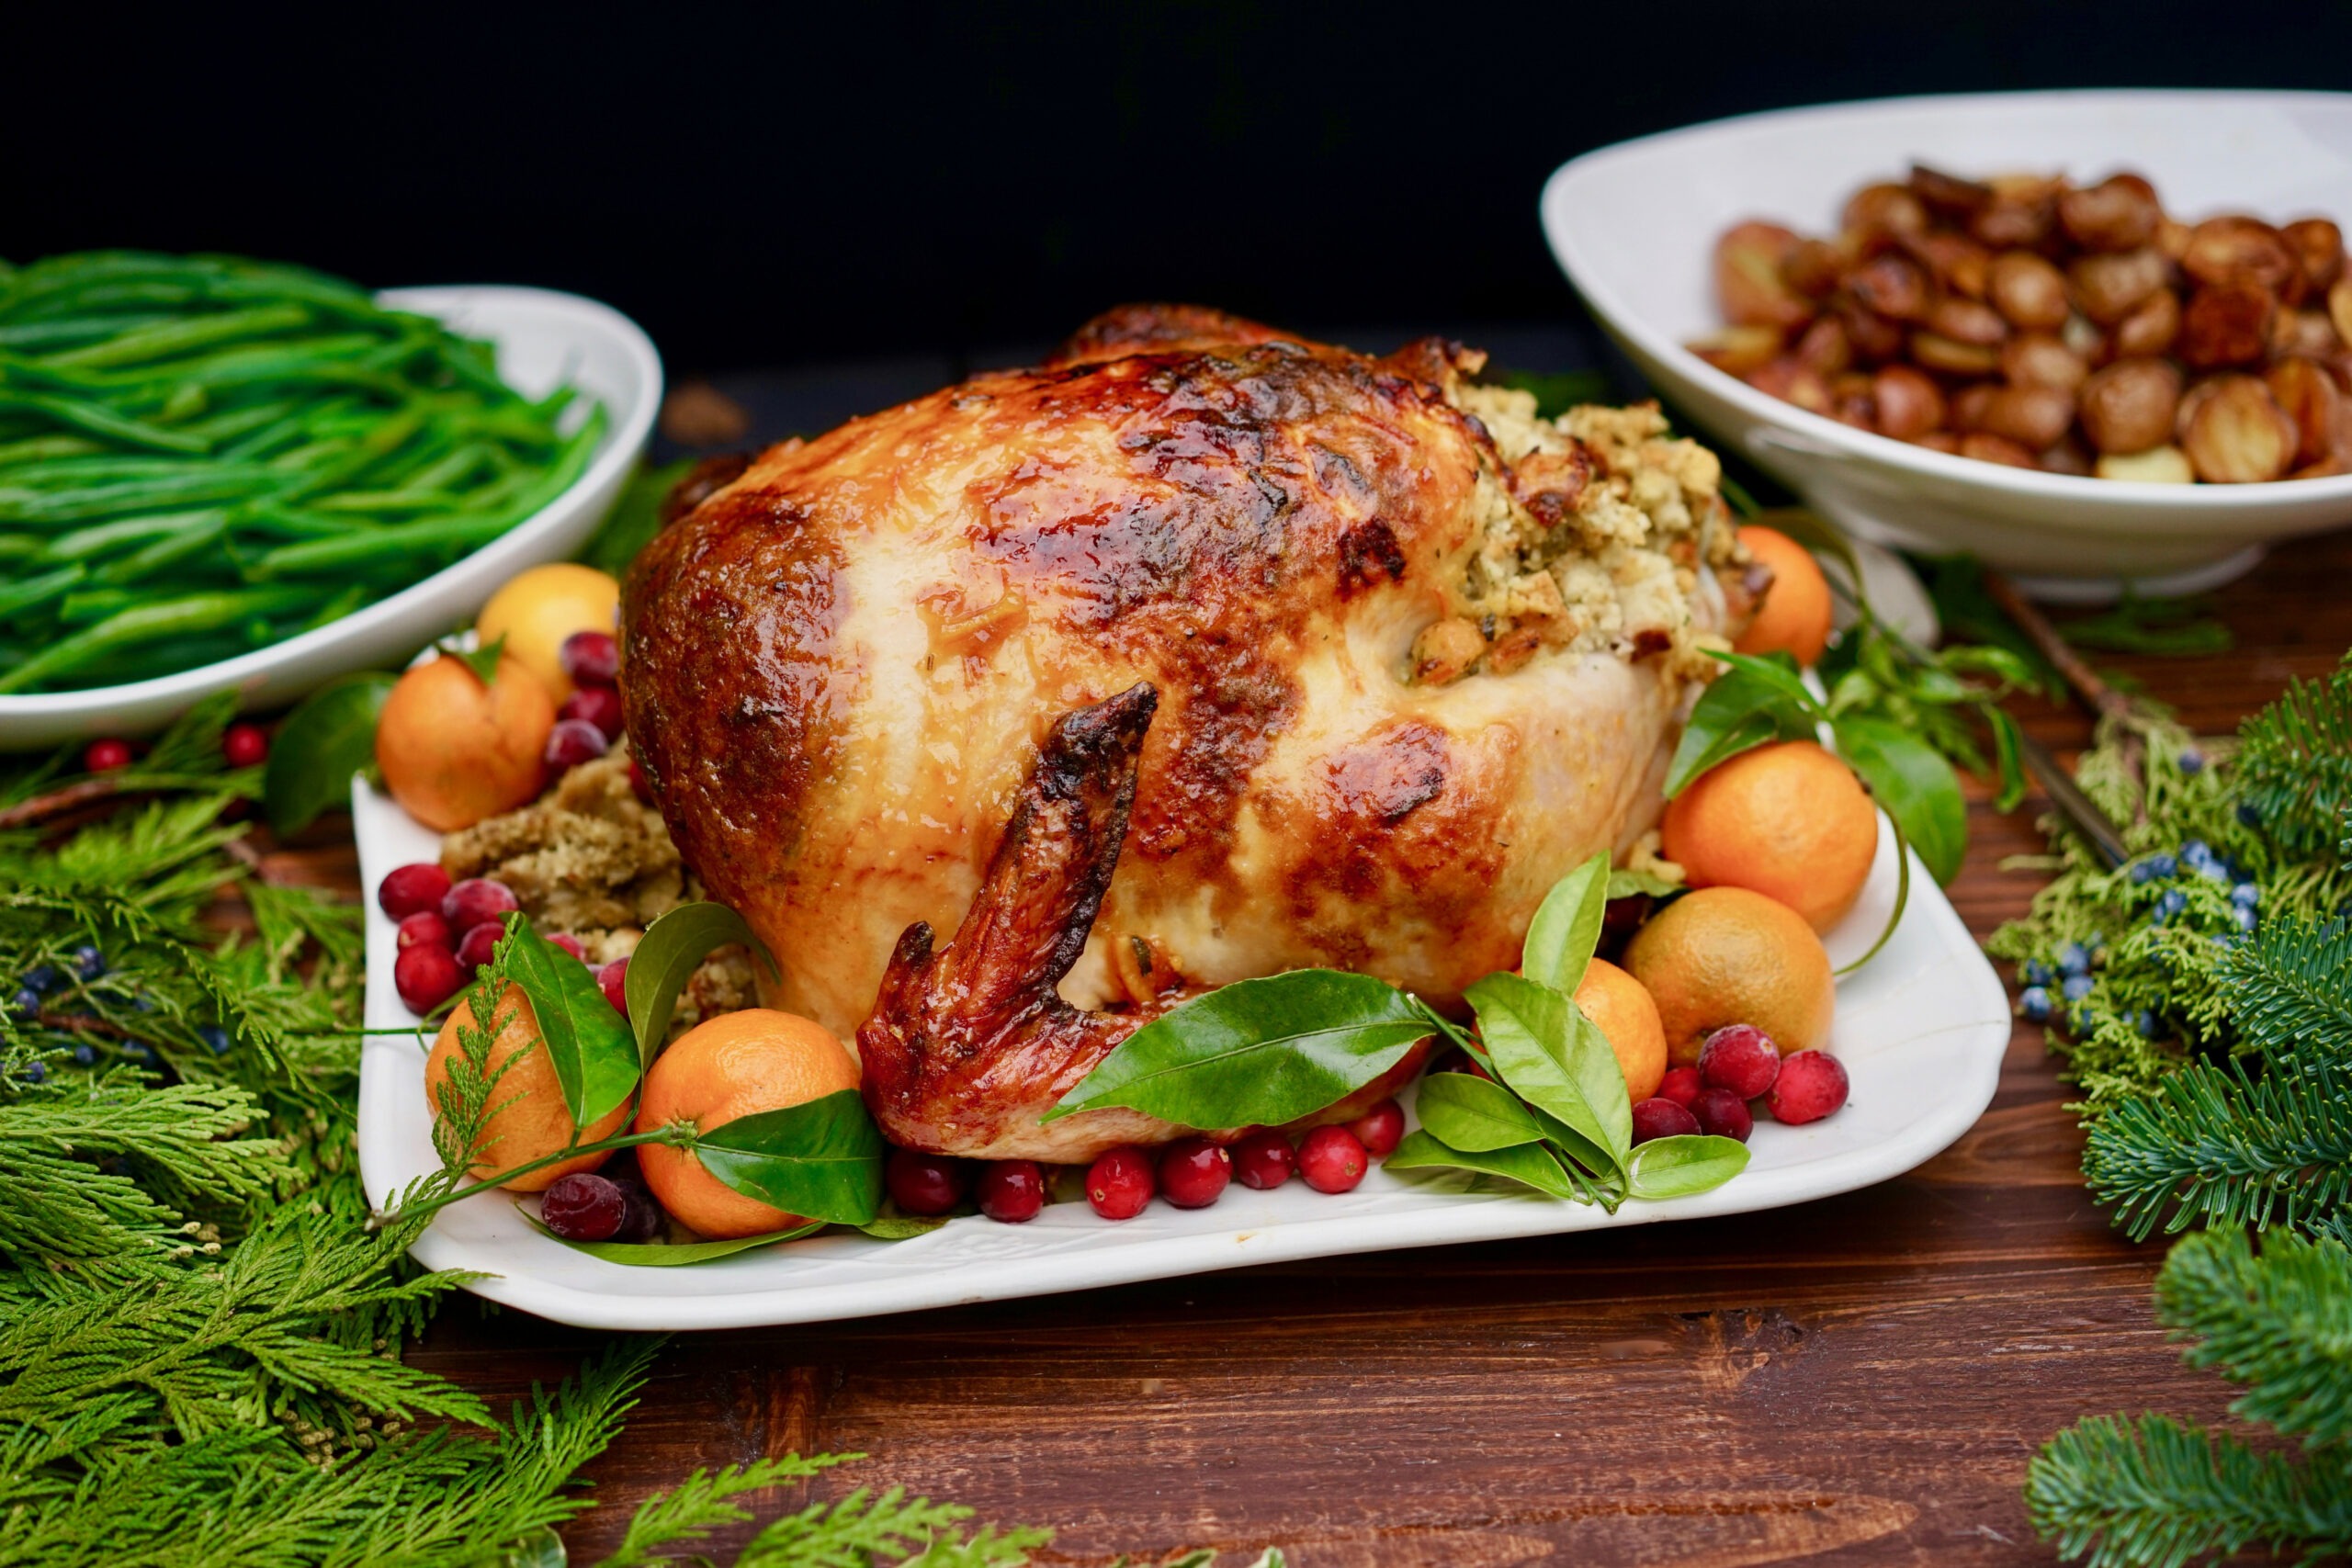 Foolproof Holiday Turkey with Orange Marmalade Glaze - dinner recipes to impress the in laws